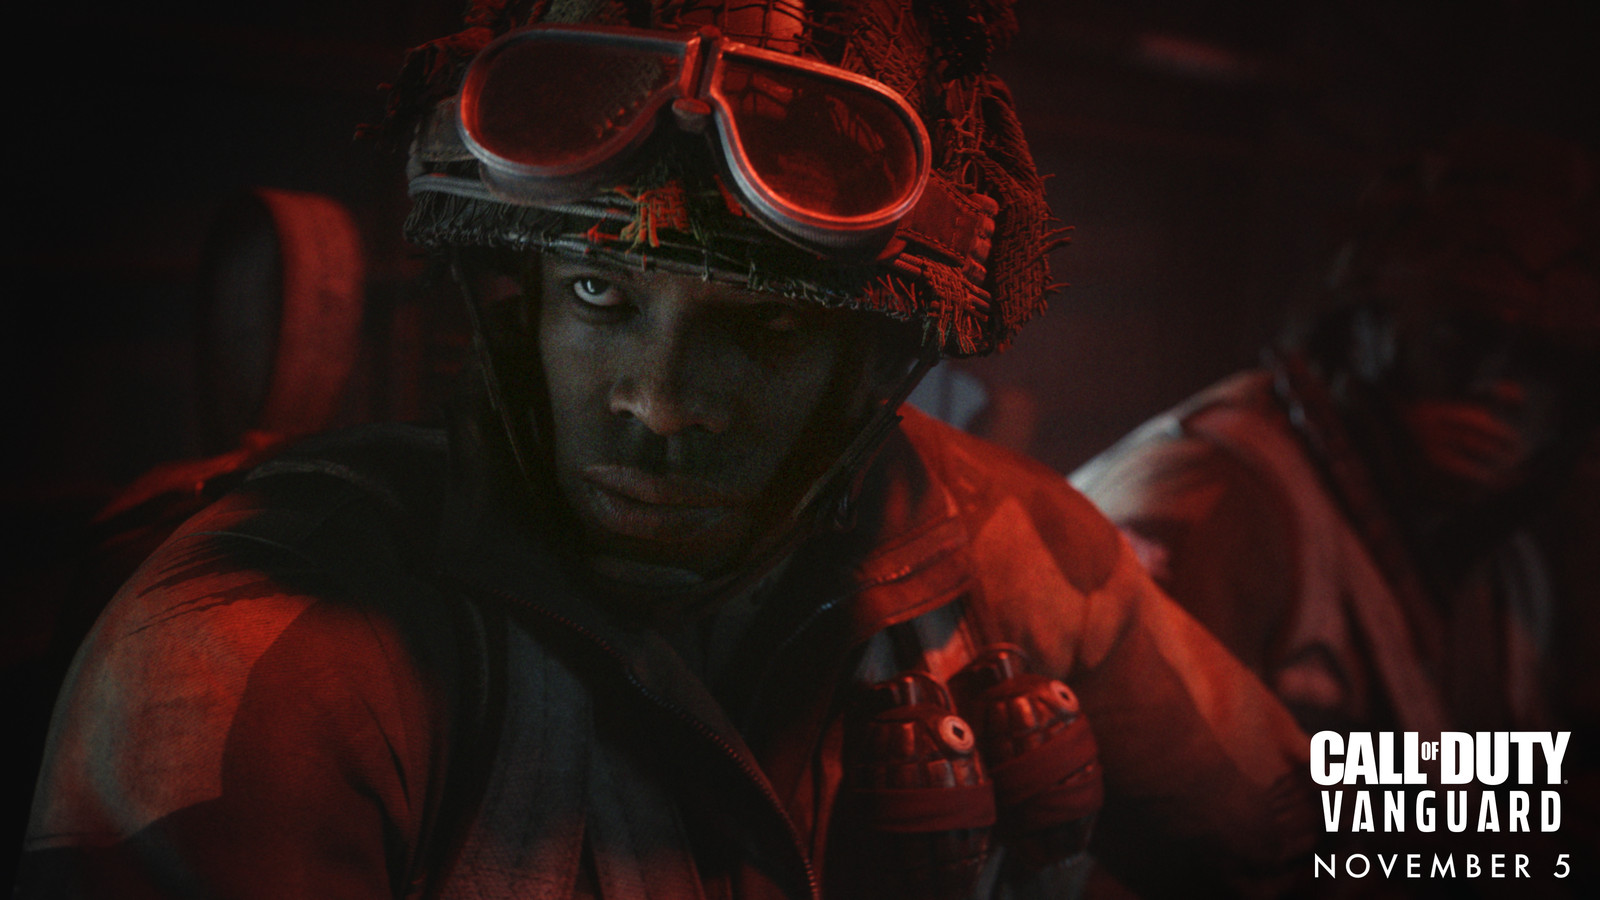 Watch The Reveal Trailer For 'Call of Duty: Vanguard'